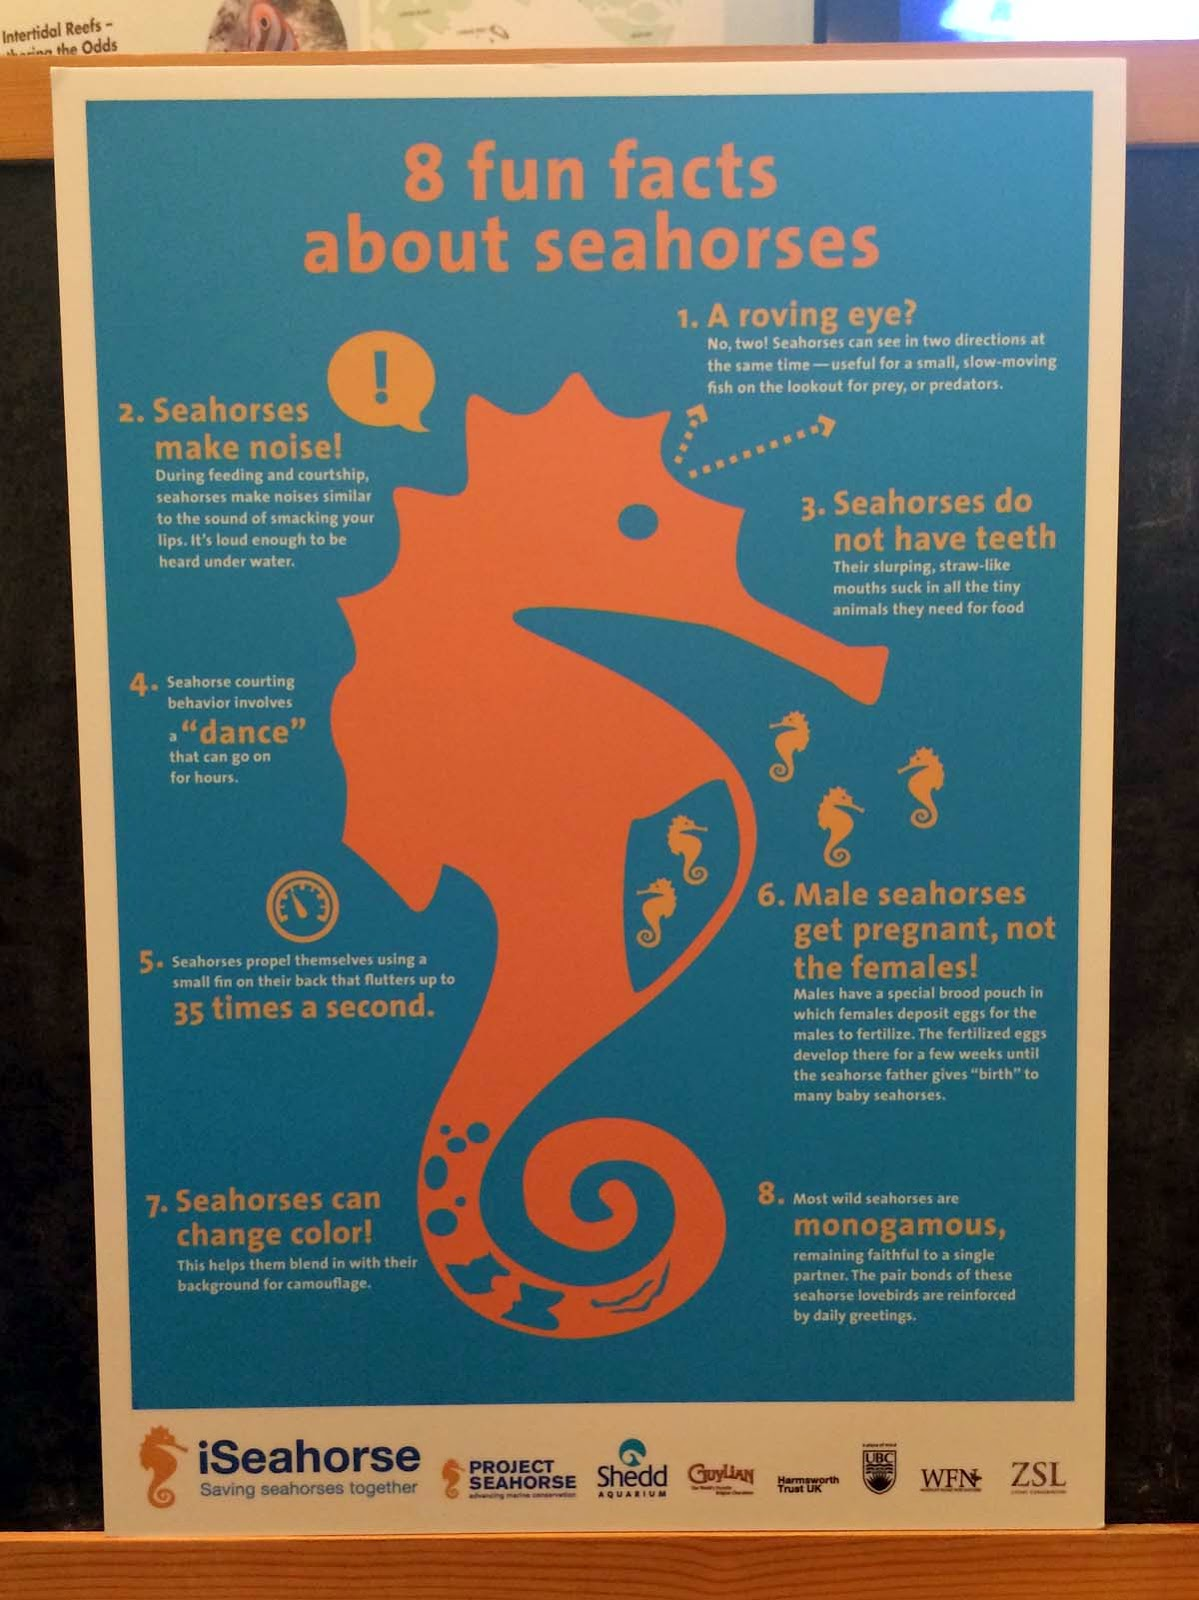 Seahorses are cool fishes!